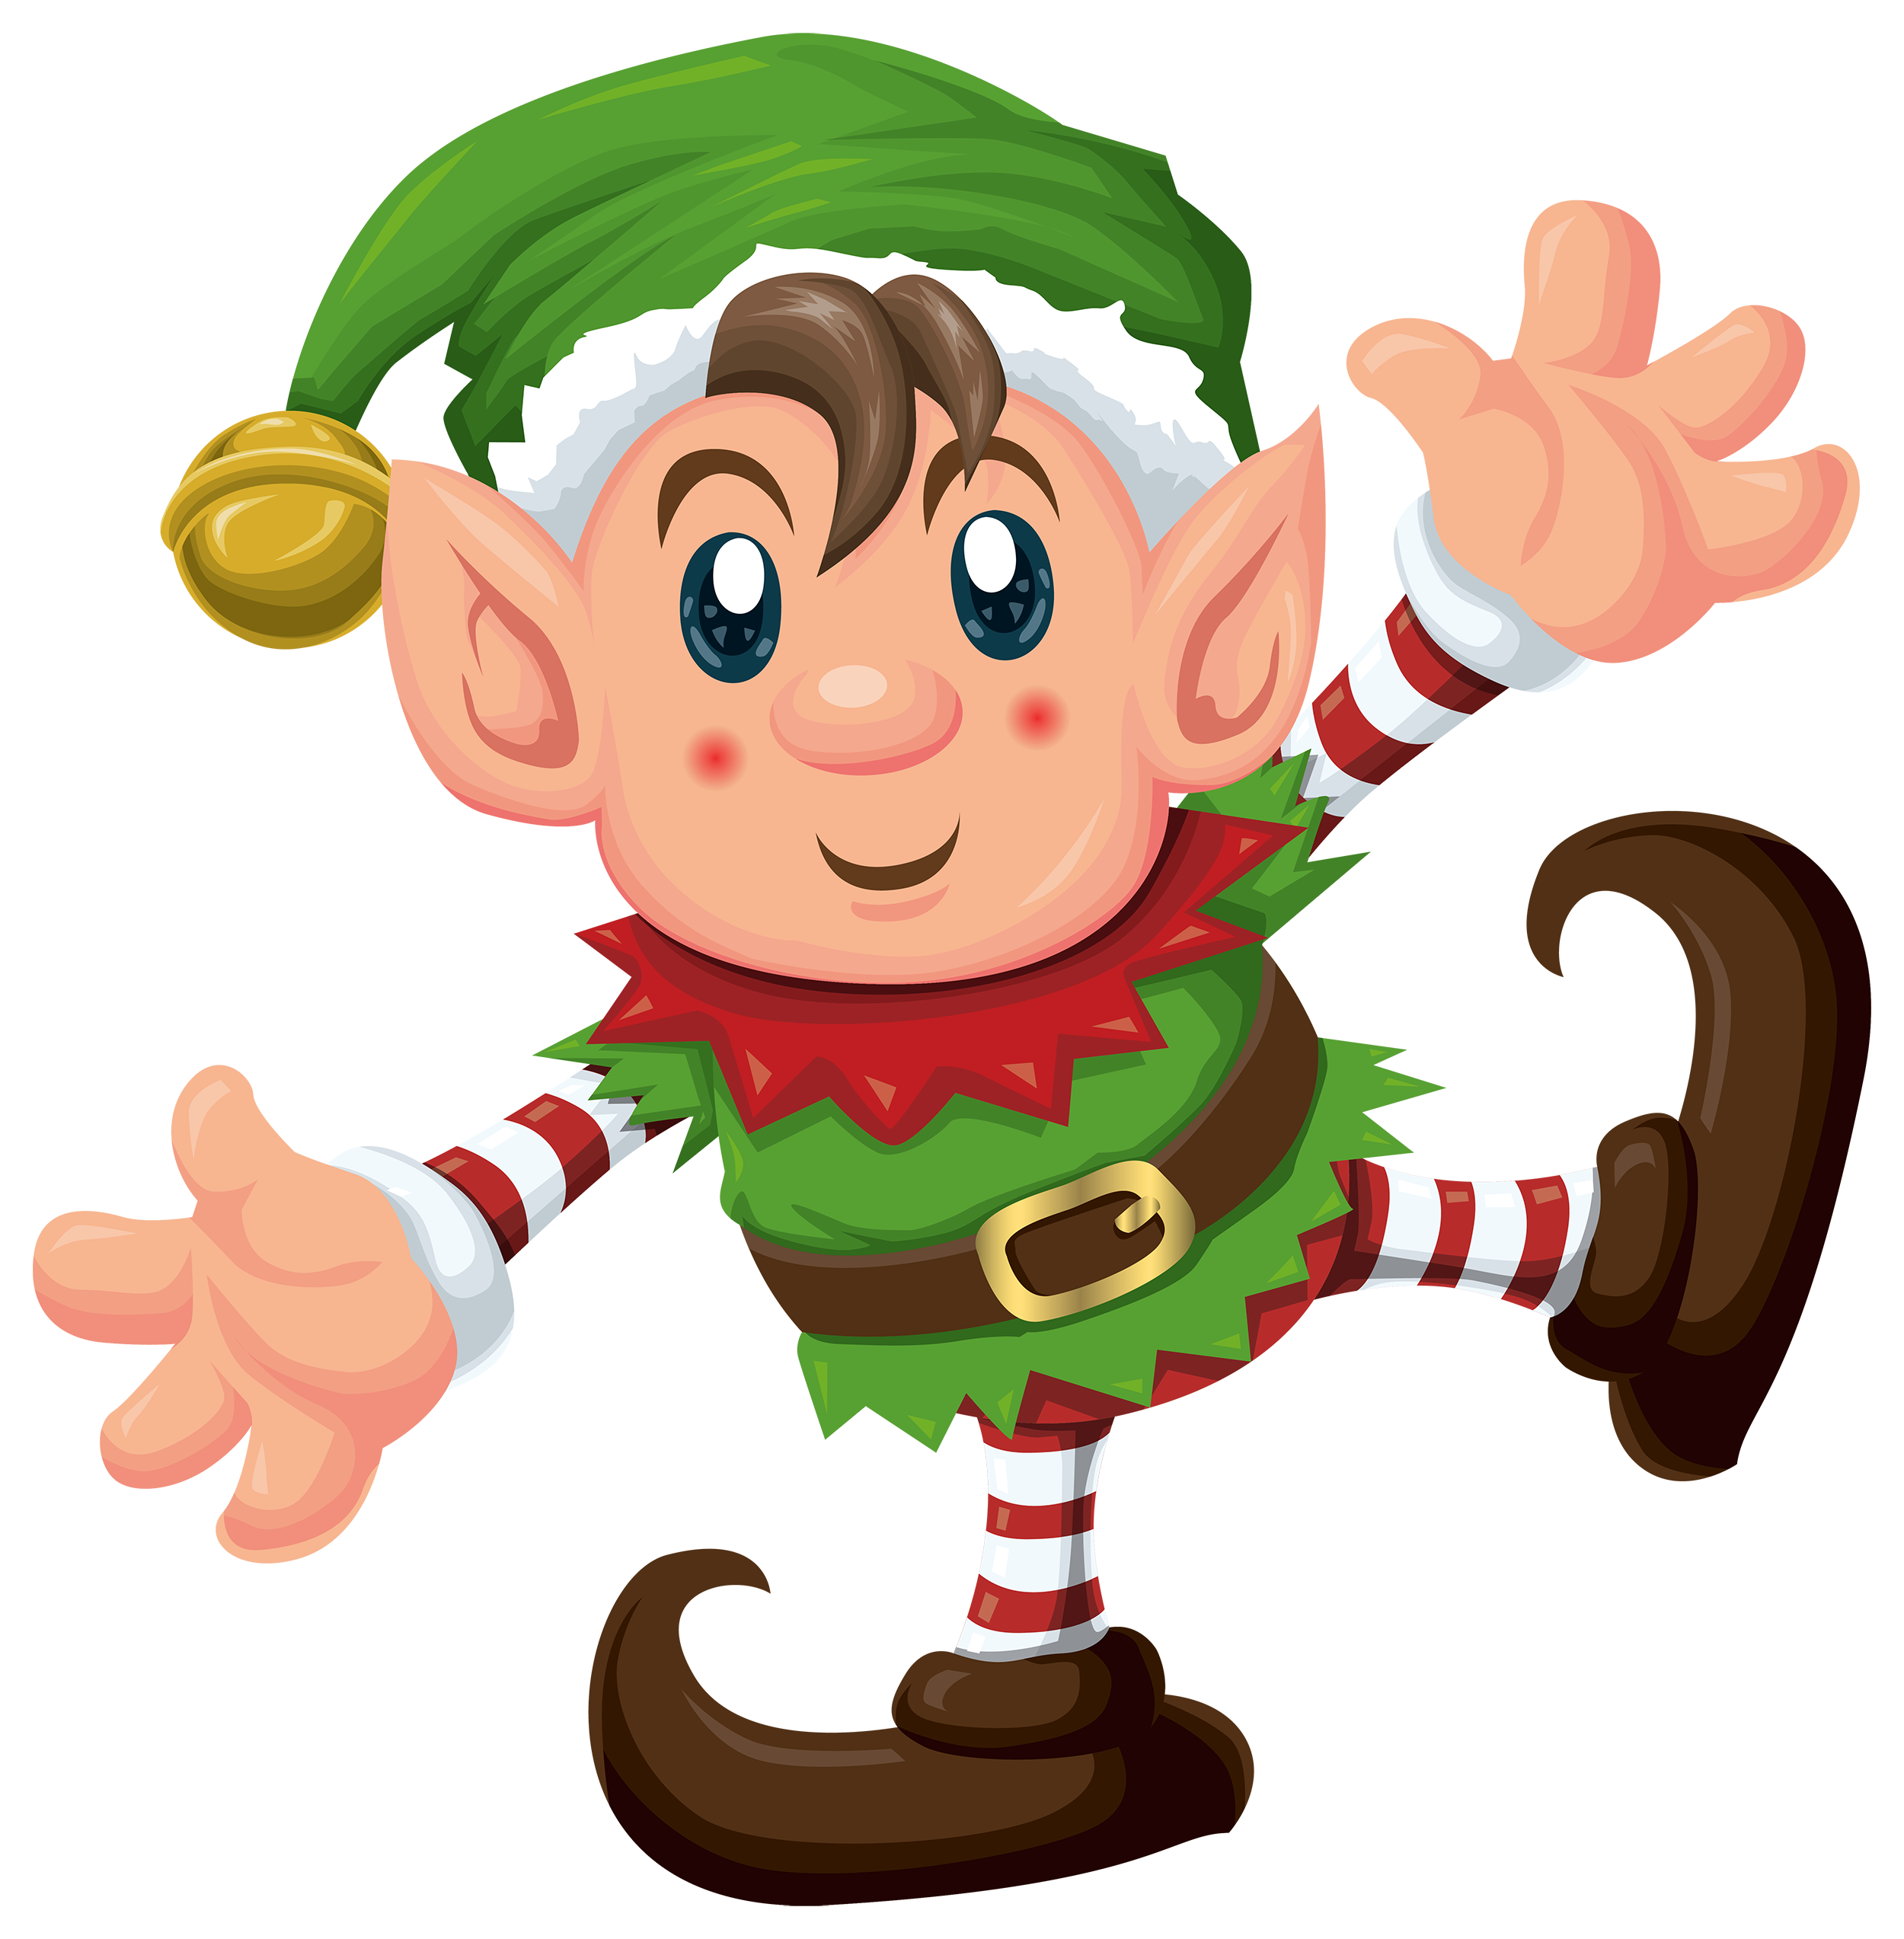 elf clipart cute